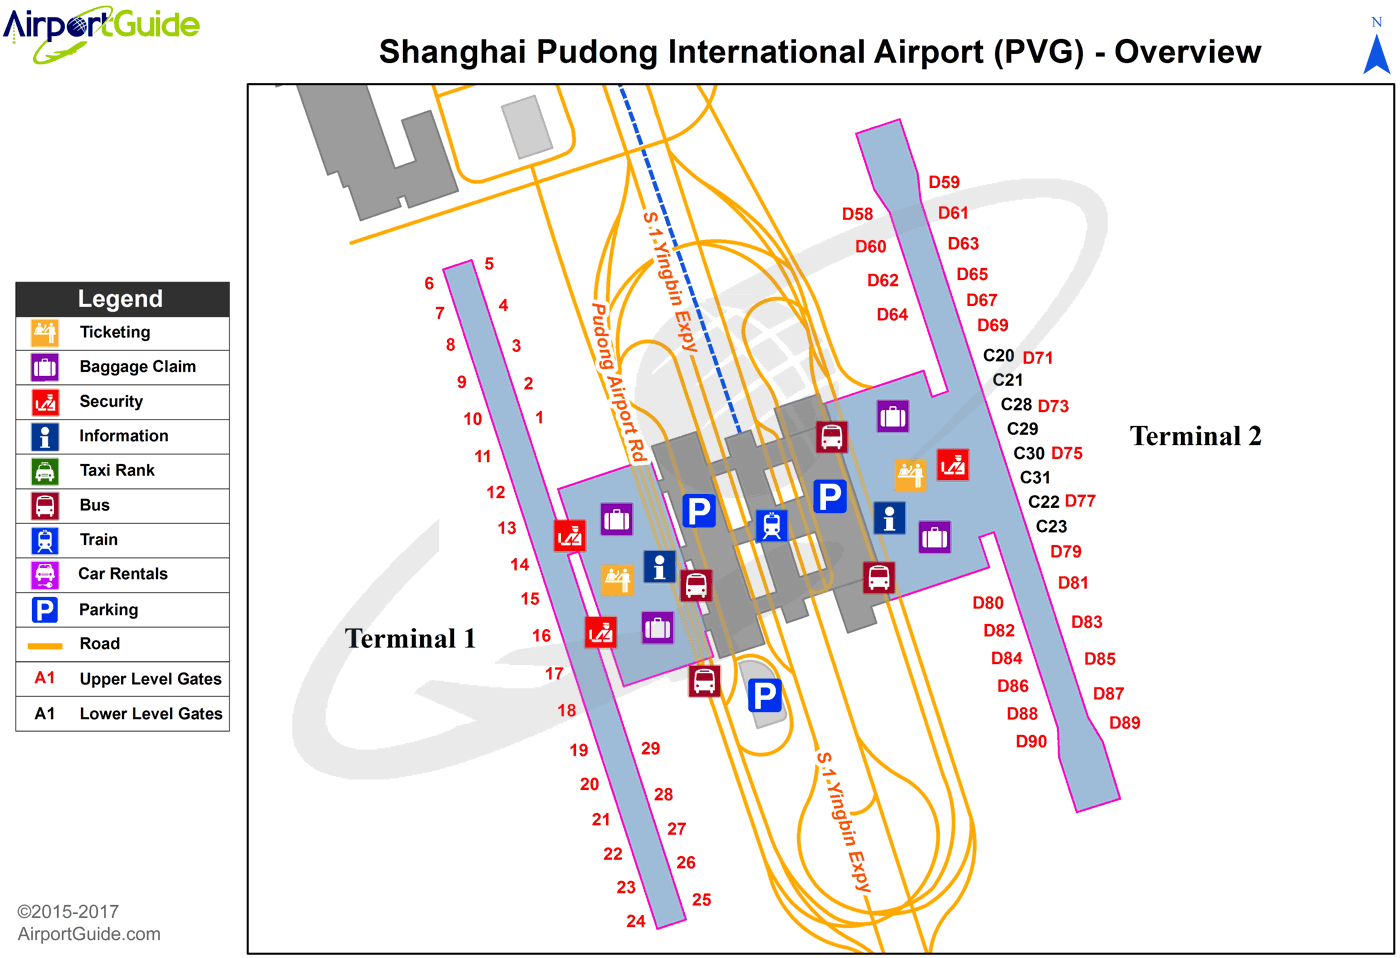 Shanghai - Shanghai Pudong International (PVG) Airport Terminal Map - Overview